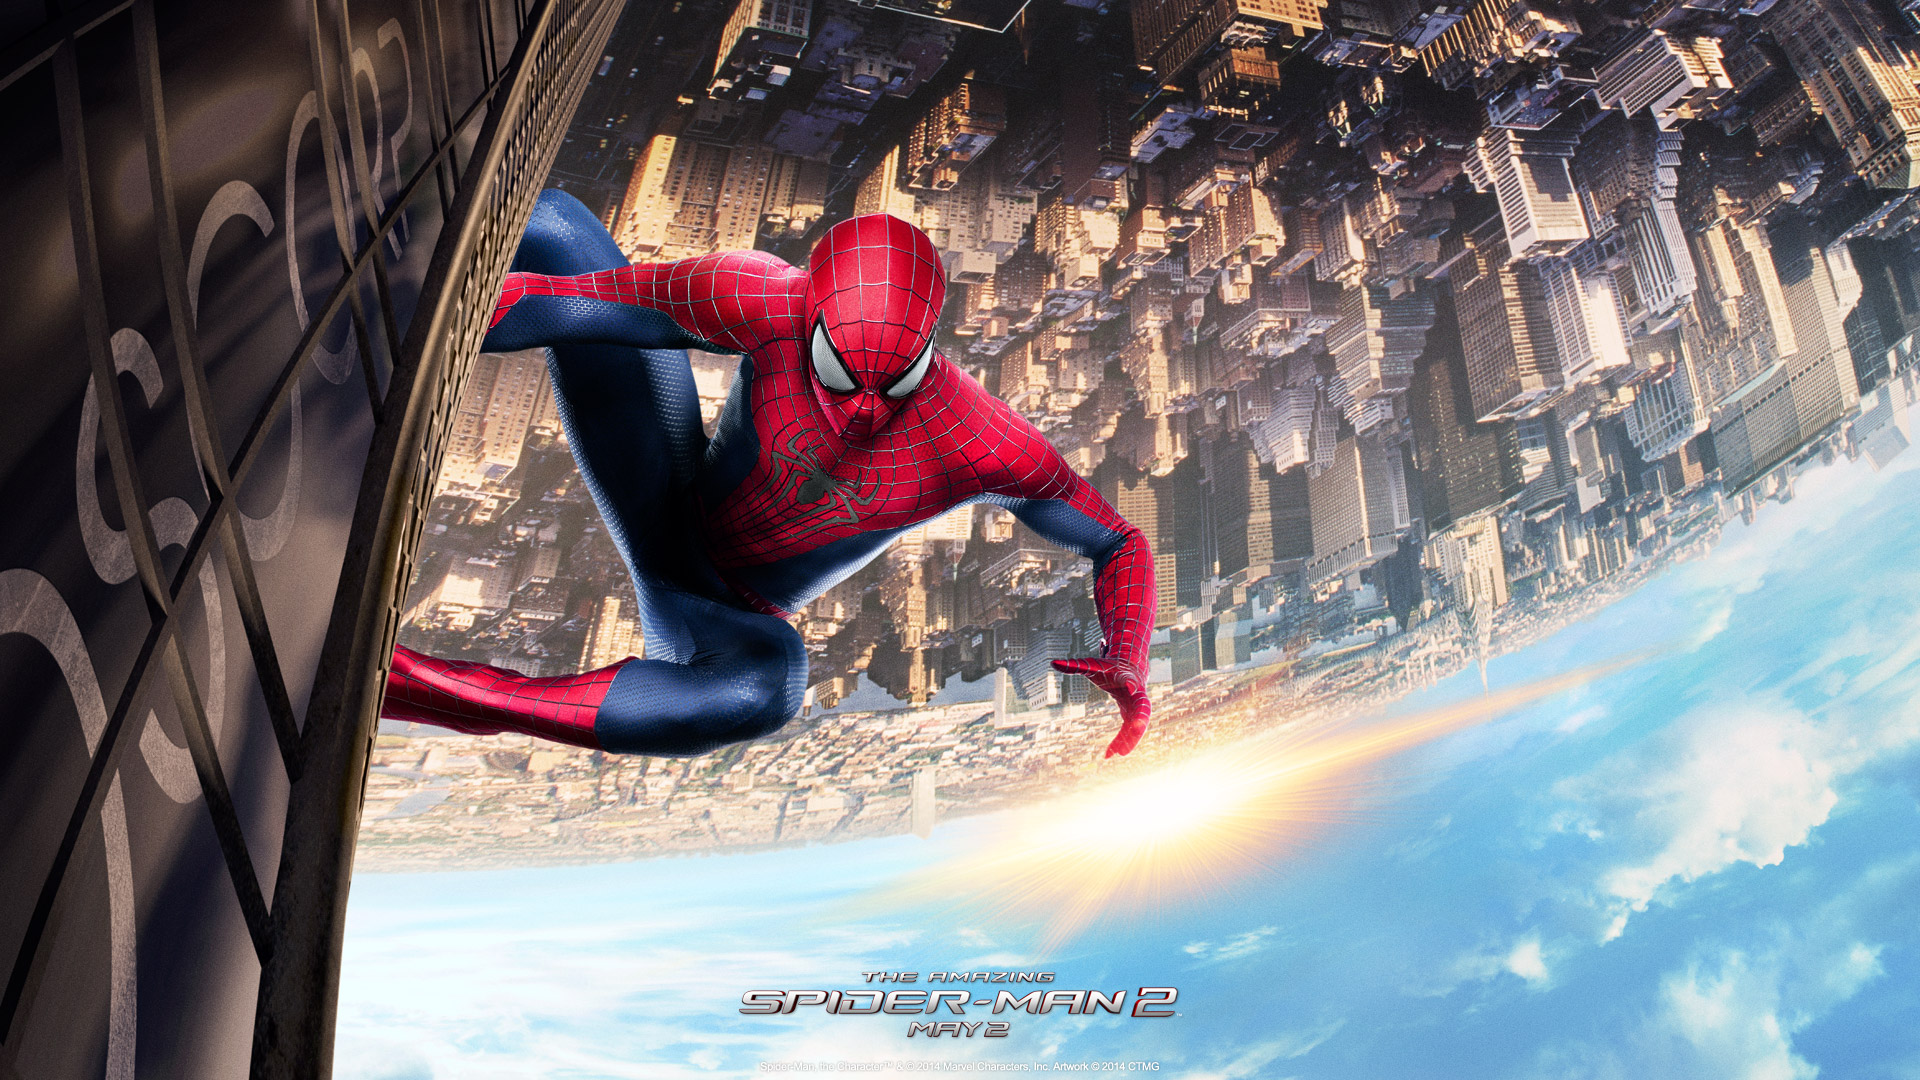 Game Of Spider Man Hd Wallpaper: Spiderman « Awesome Wallpapers